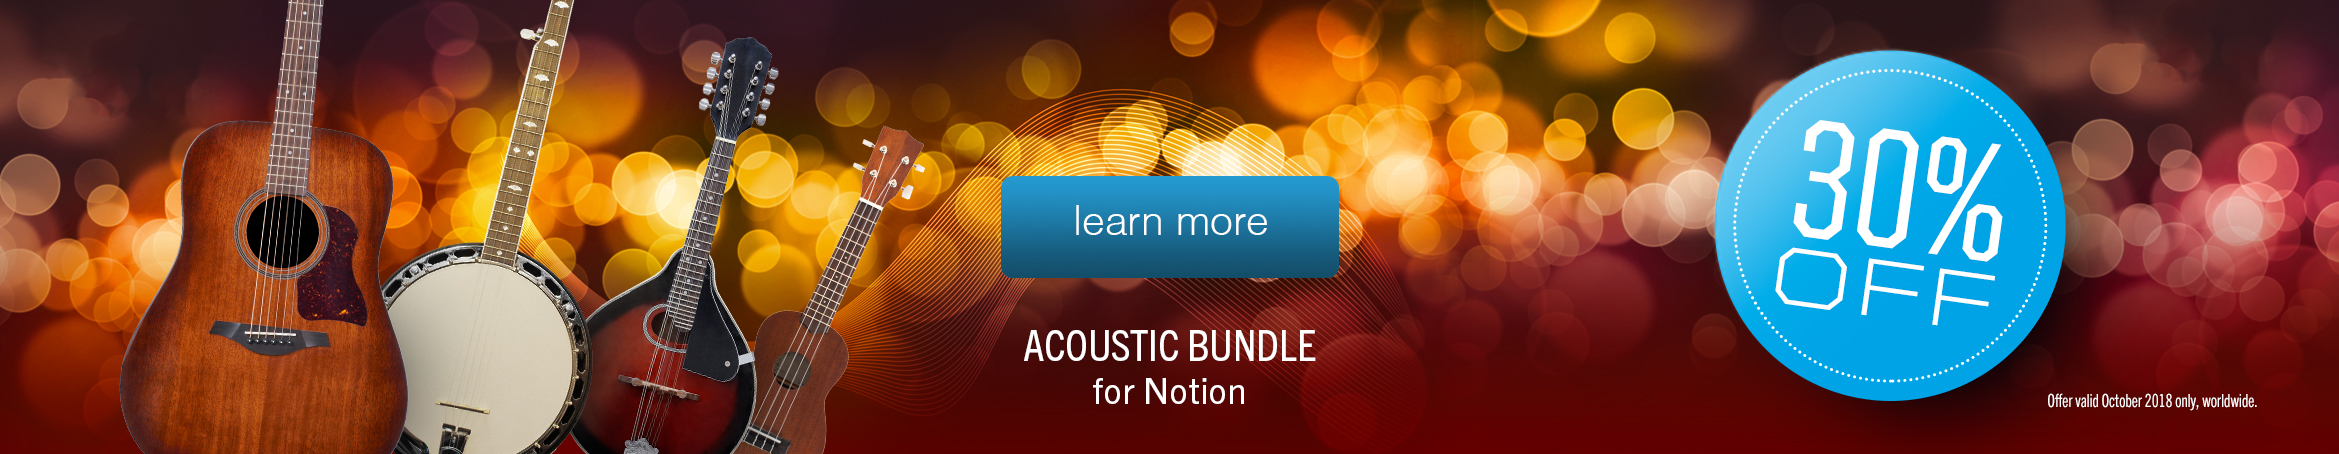 30 off Acoustic bundle